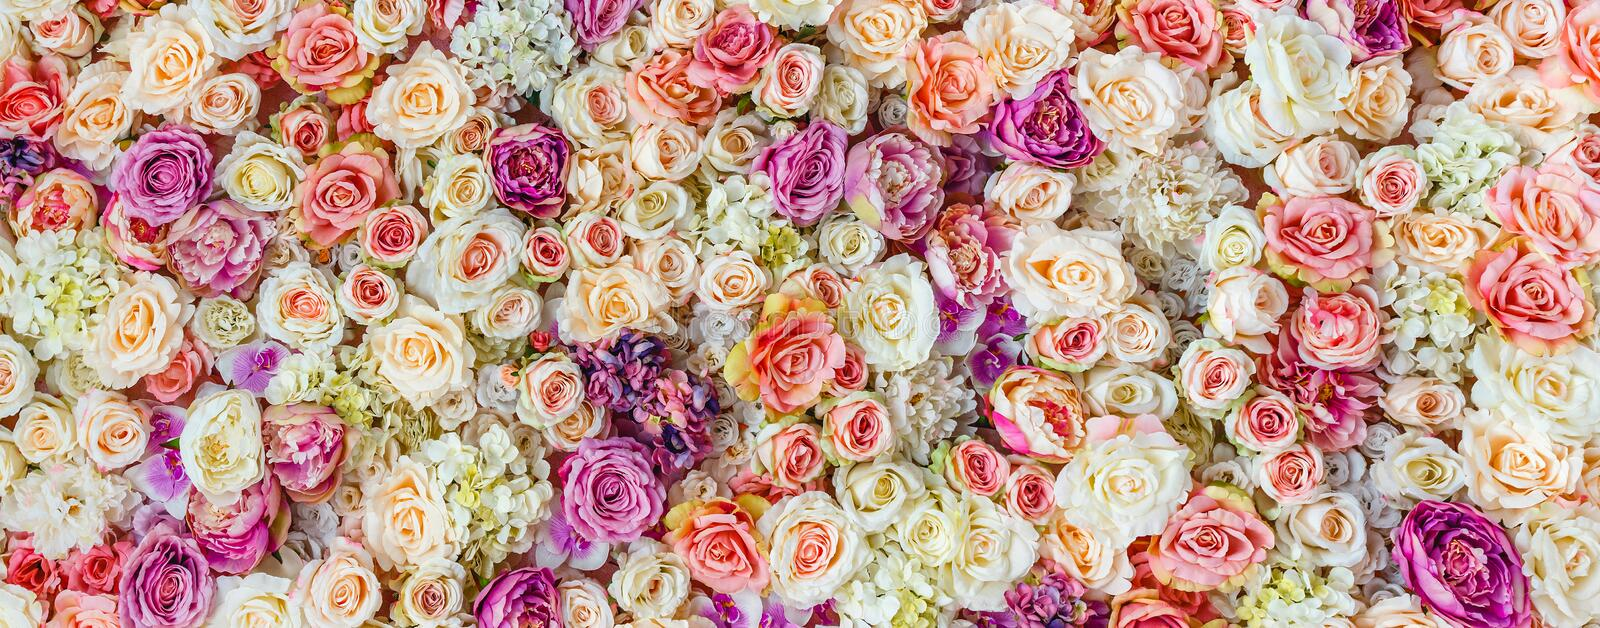 Flowers wall background with amazing red and white roses, Wedding decoration,. Hand made royalty free stock photos